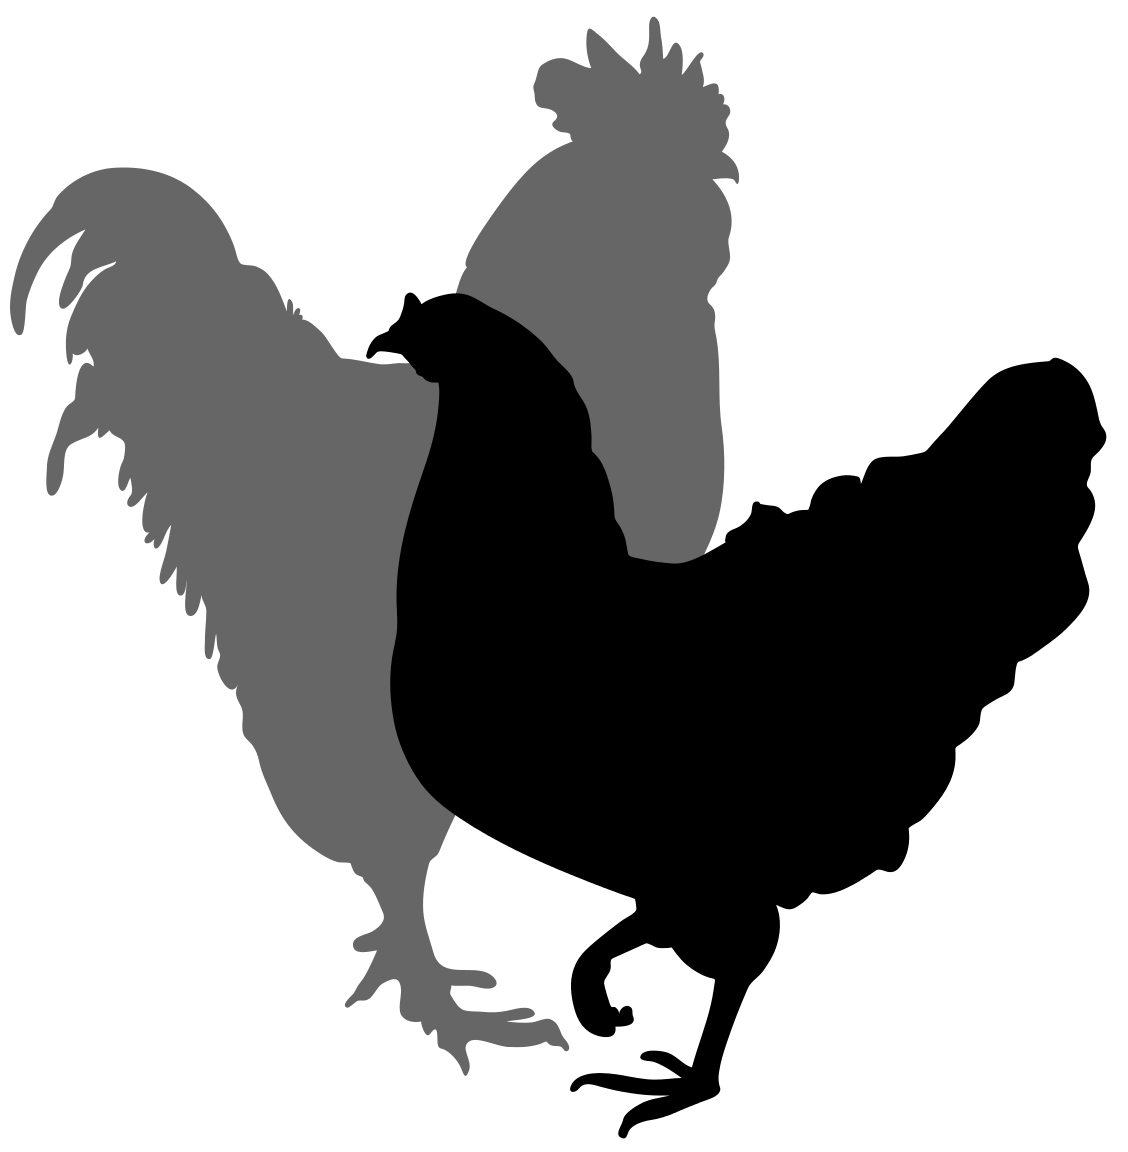 1128x1152 Filerooster And Hen Silhouette 02.svg Cricut Hens